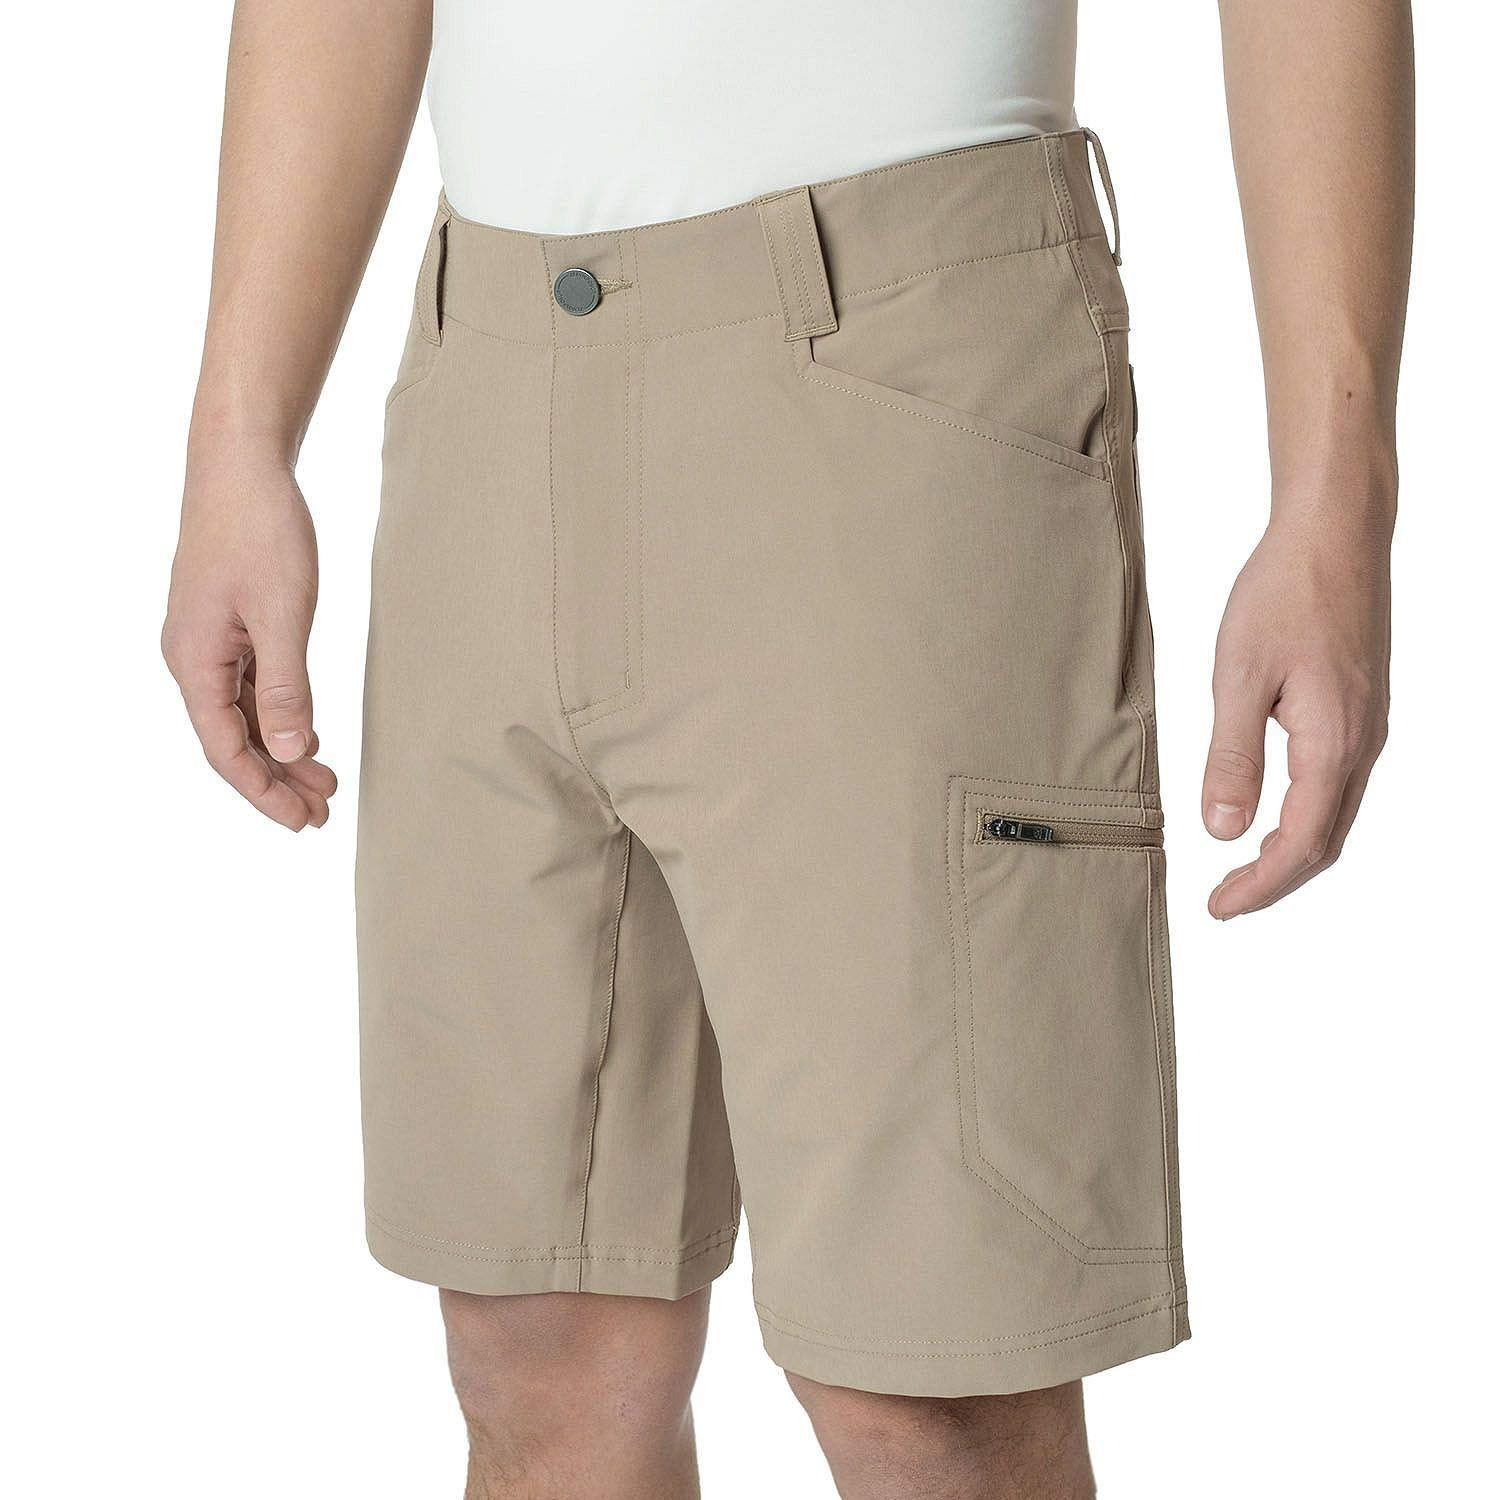 ZeroXposur Men's Lightweight Stretch Travel Shorts Color: Oak Size: (30)-(31)-(32)-(33)-(34)-(36)-(38)-(40) New Tags (40) by ZeroXposur (Image #3)